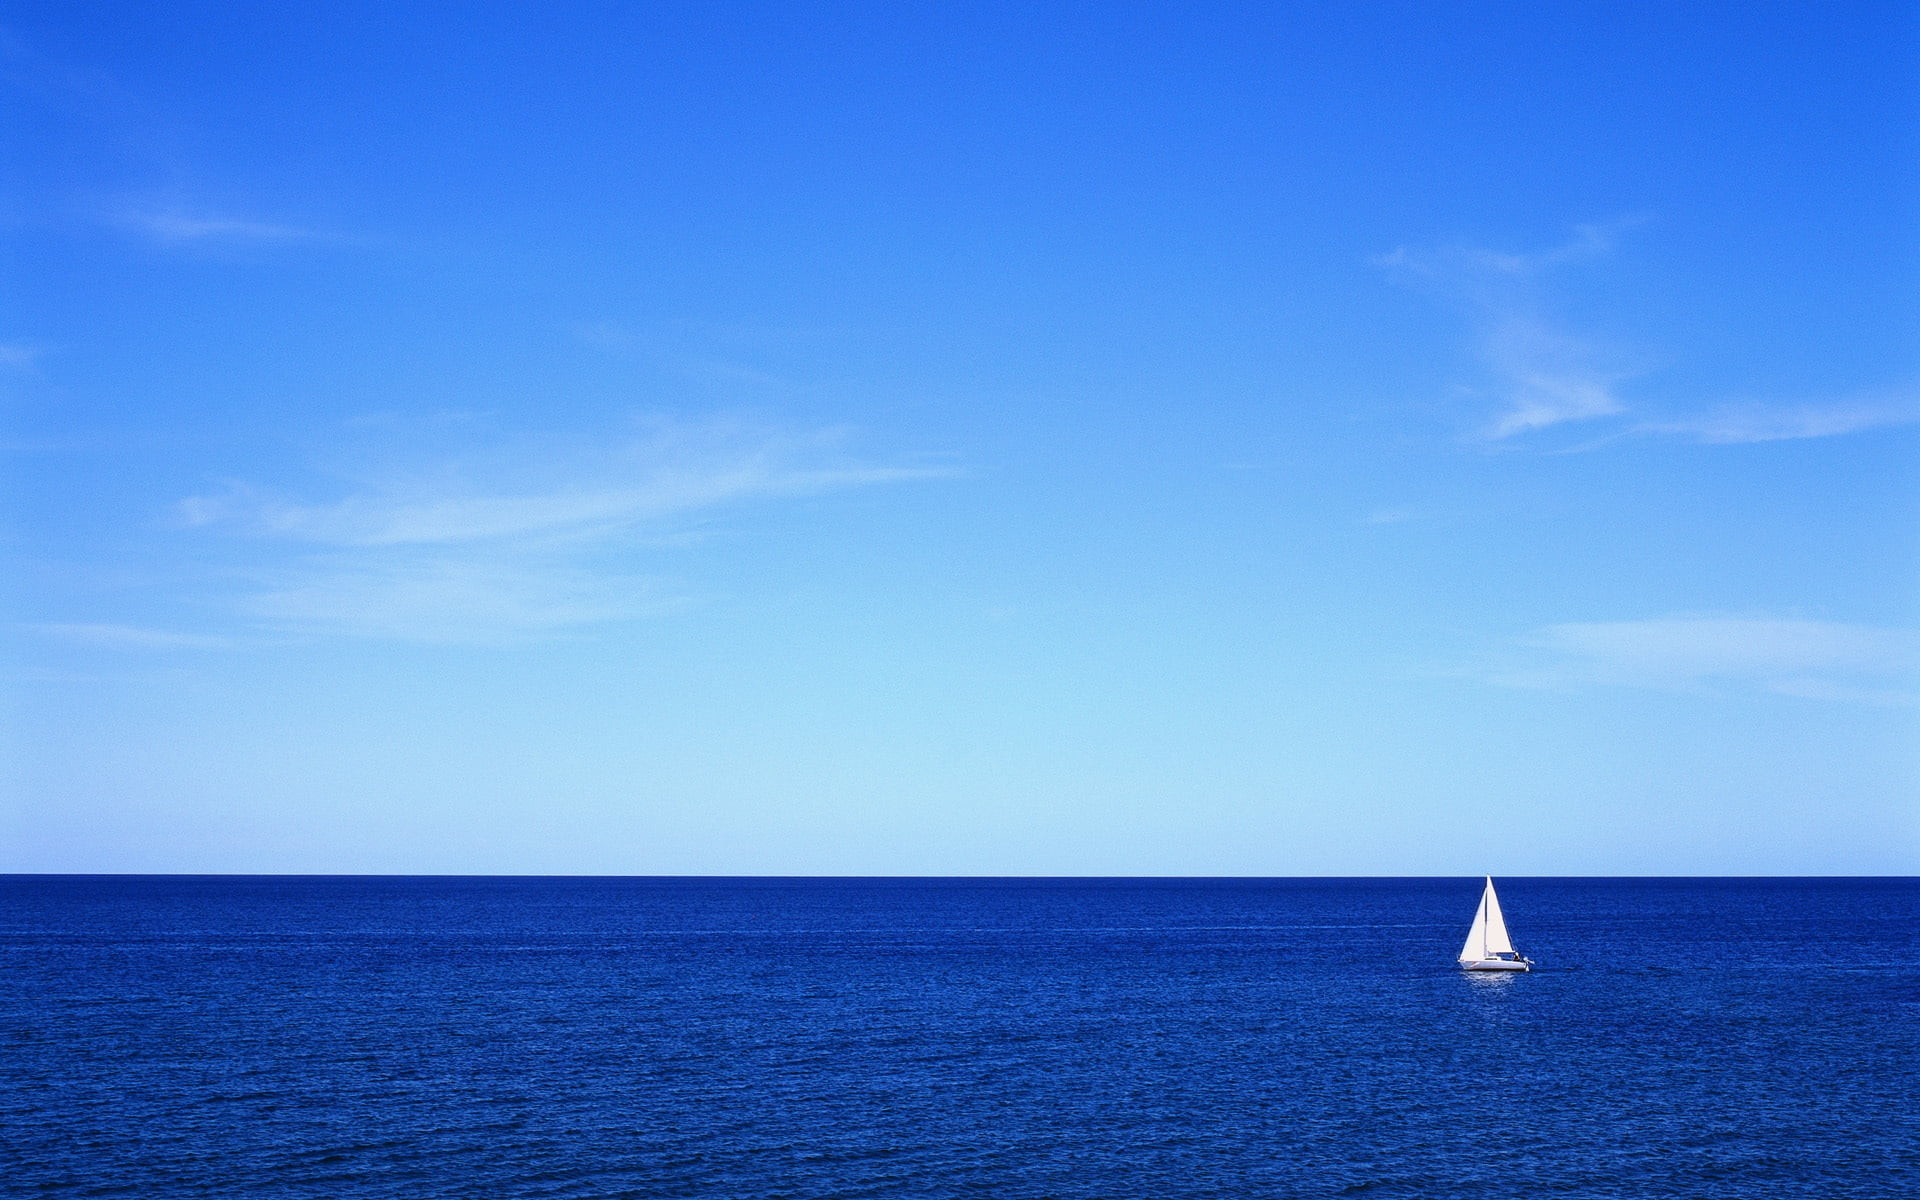 Res: 1920x1200, white sailing boat on ocean during daytime HD wallpaper